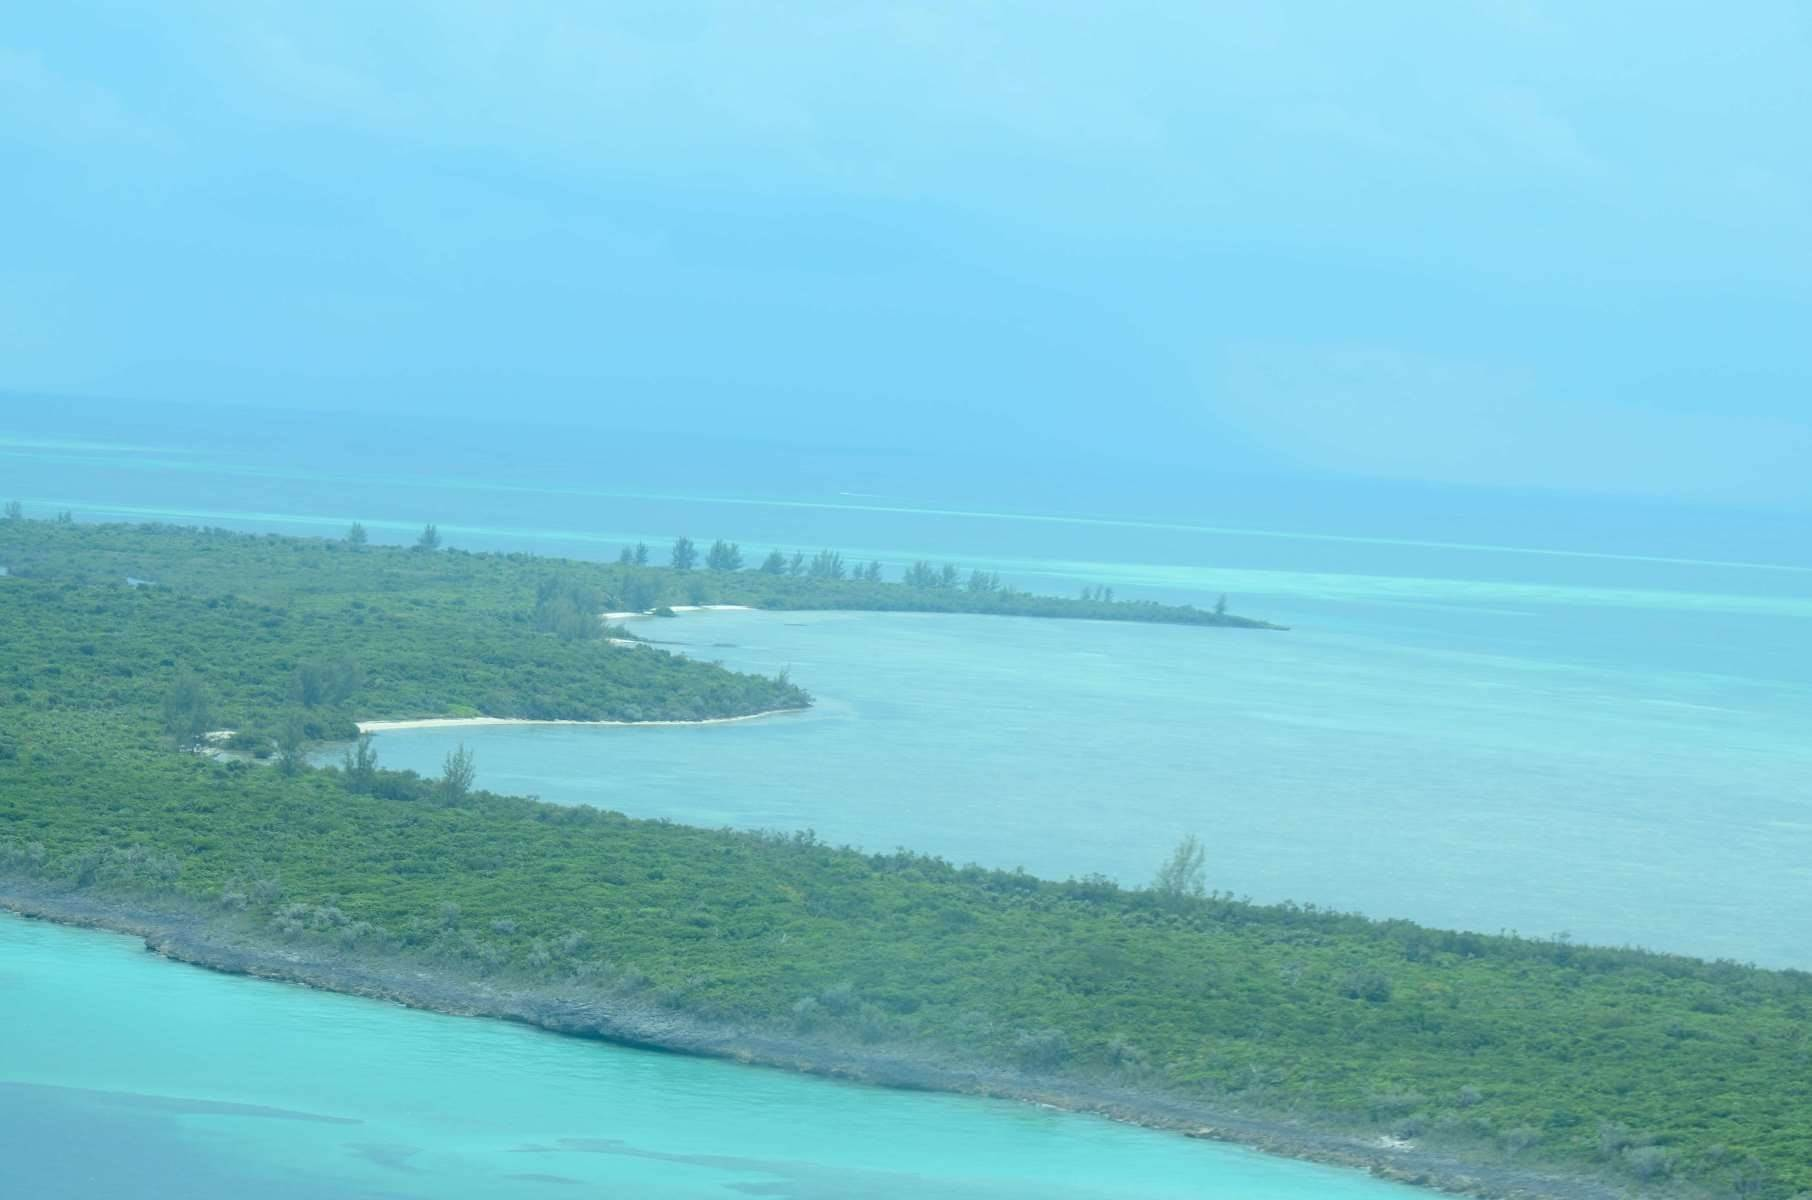 4. Private Islands por un Venta en Large Private Island in Abaco with approved development Plans - MLS 42074 Abaco, Bahamas